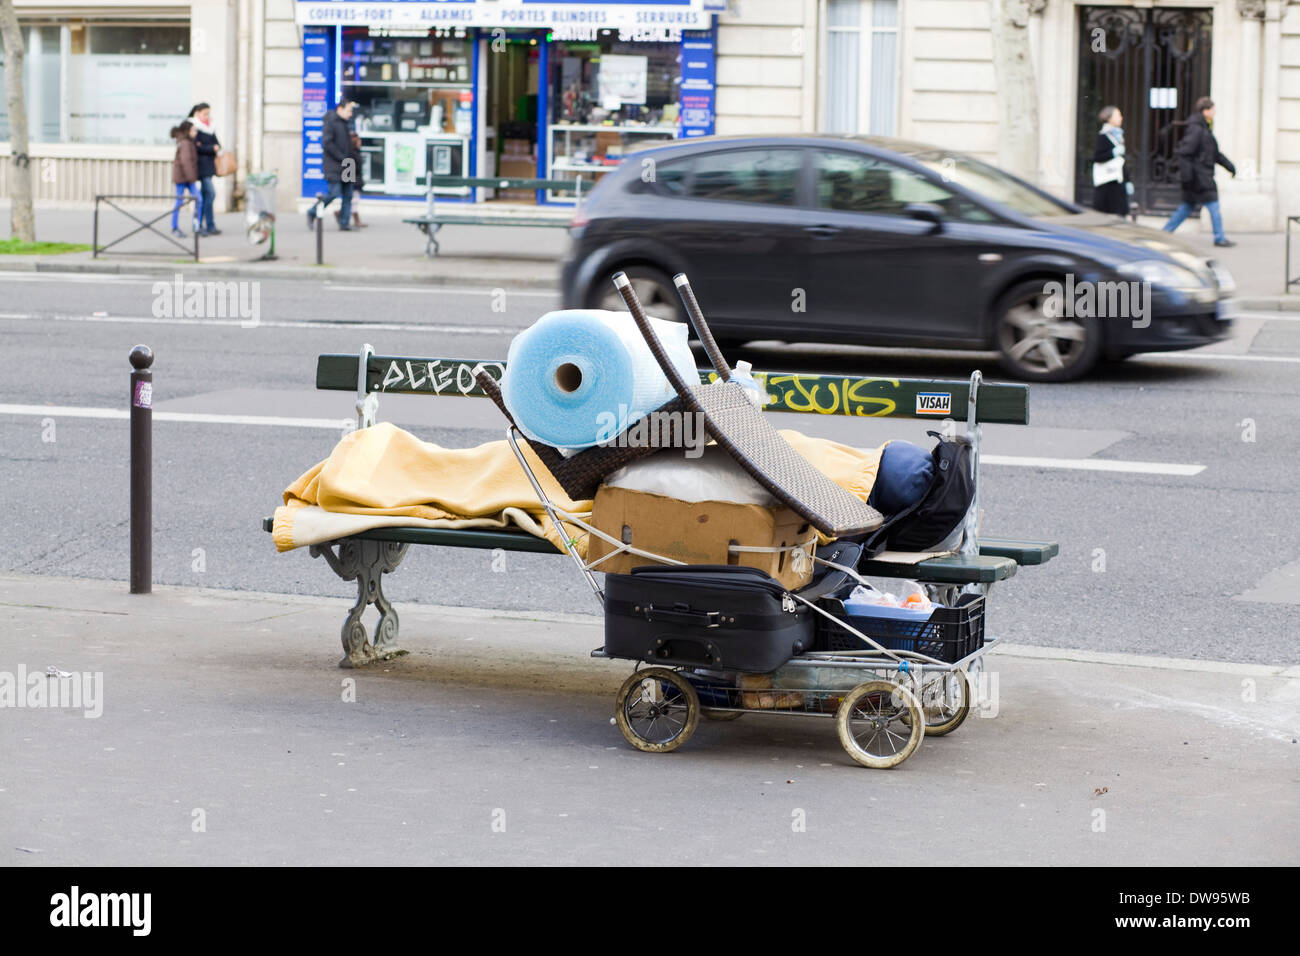 A Person sleeping rough on a street bench in Paris France - Stock Image